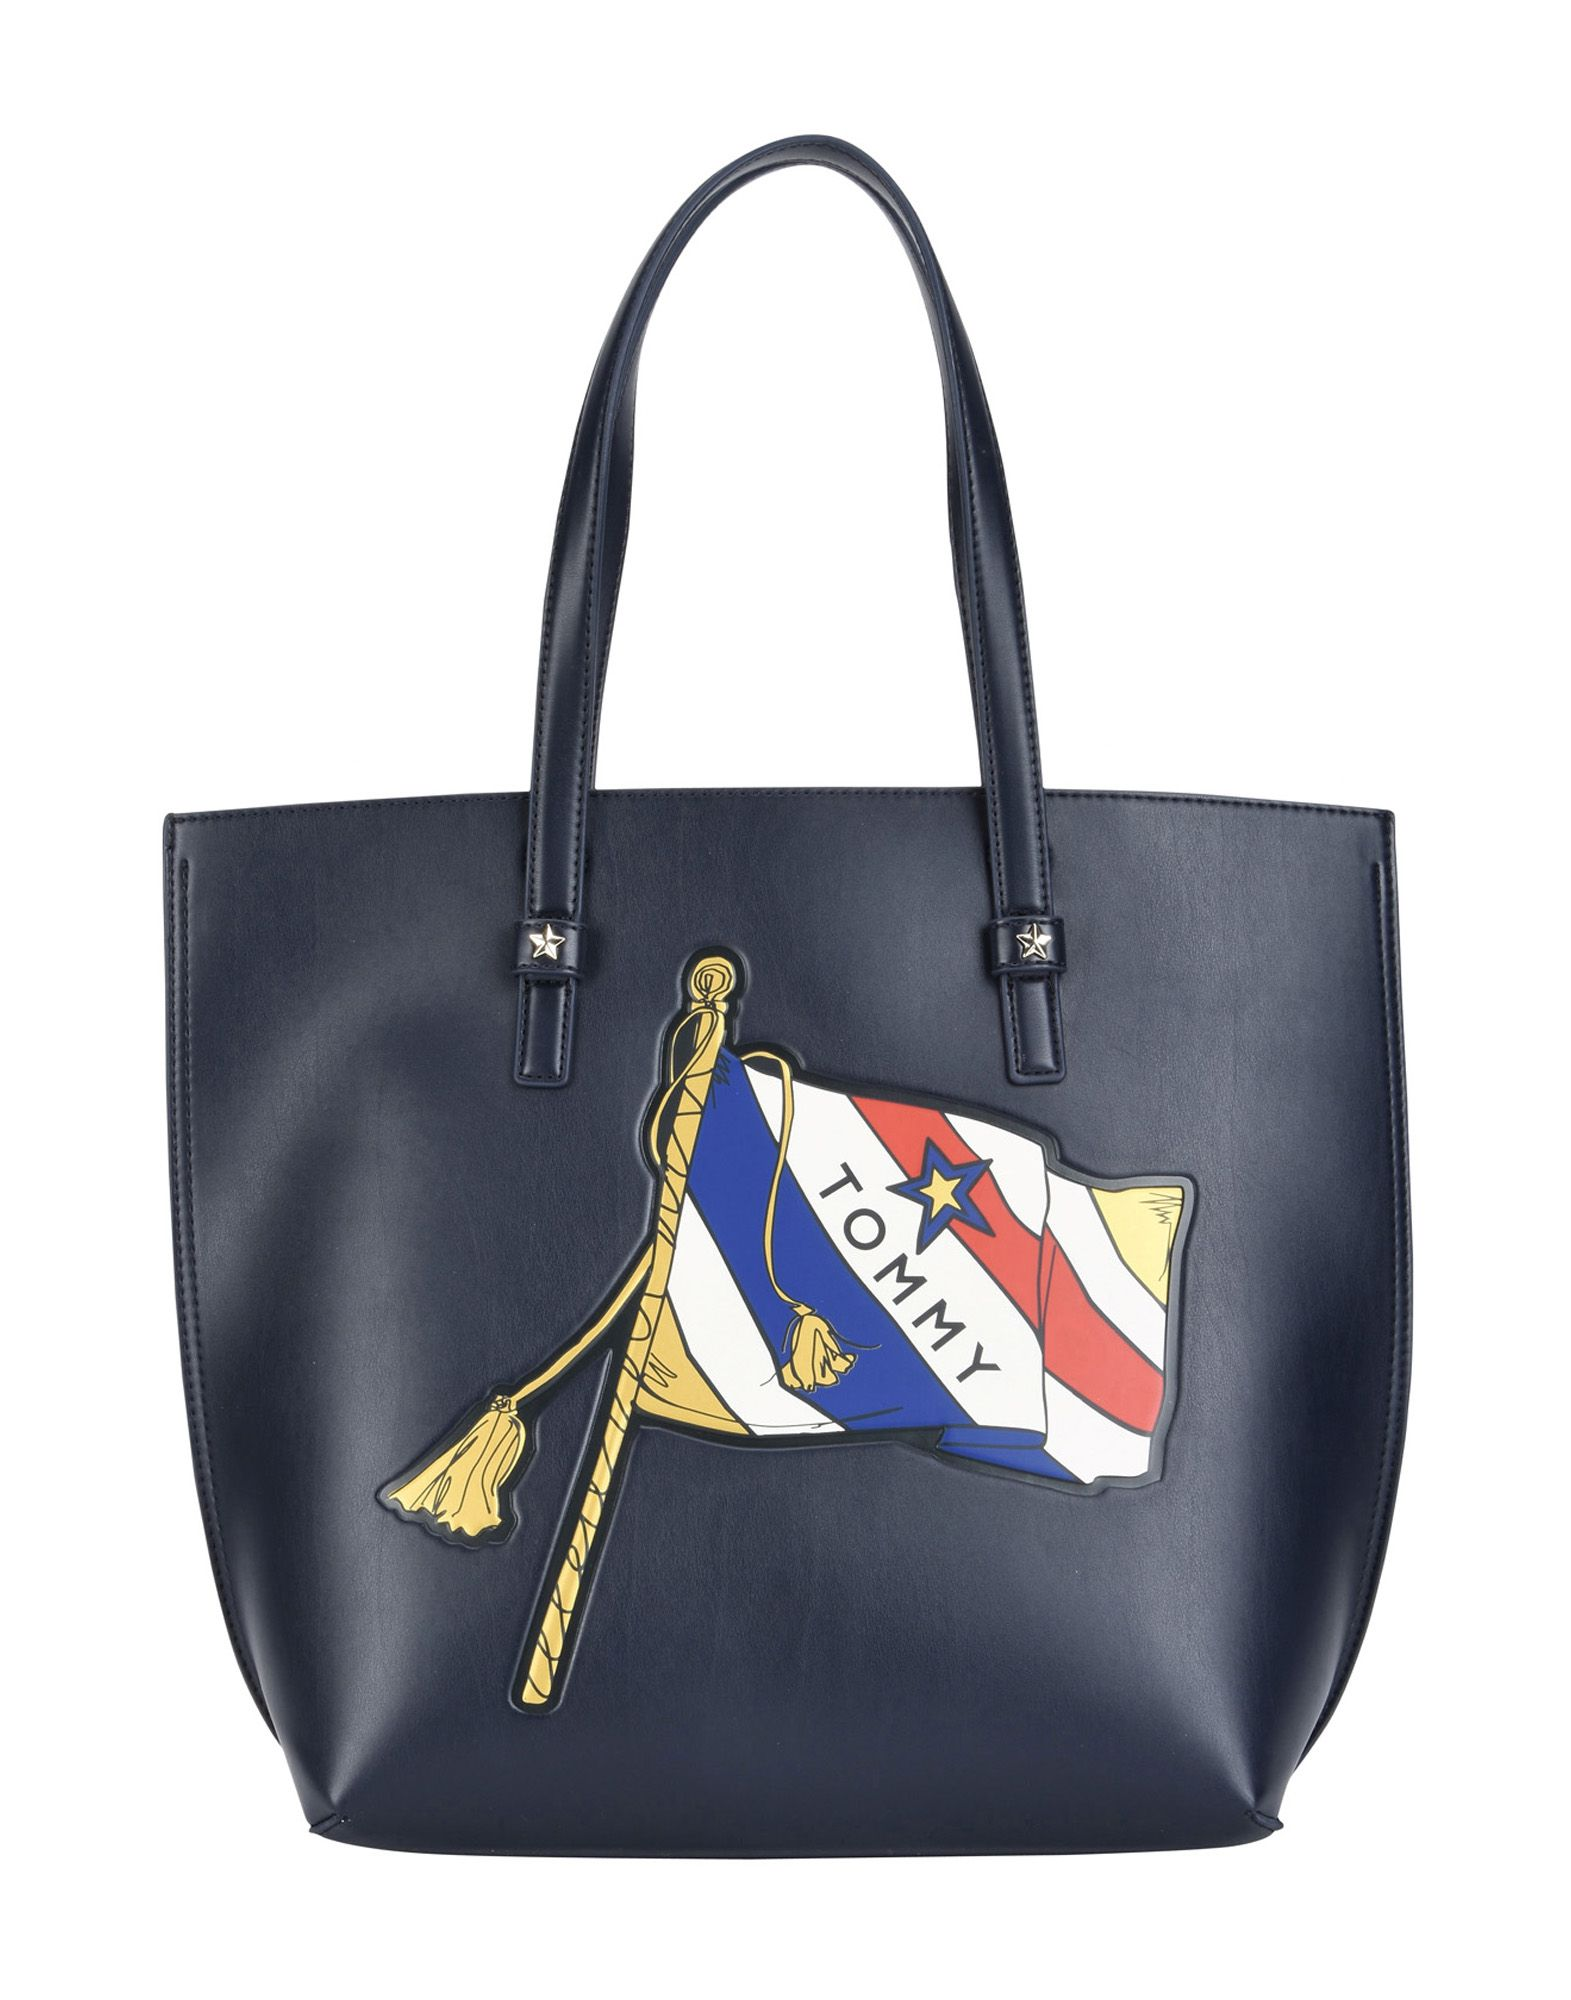 Borsa A Mano Tommy Hilfiger Th Effortless Tote Lrg Print - Donna - Acquista online su